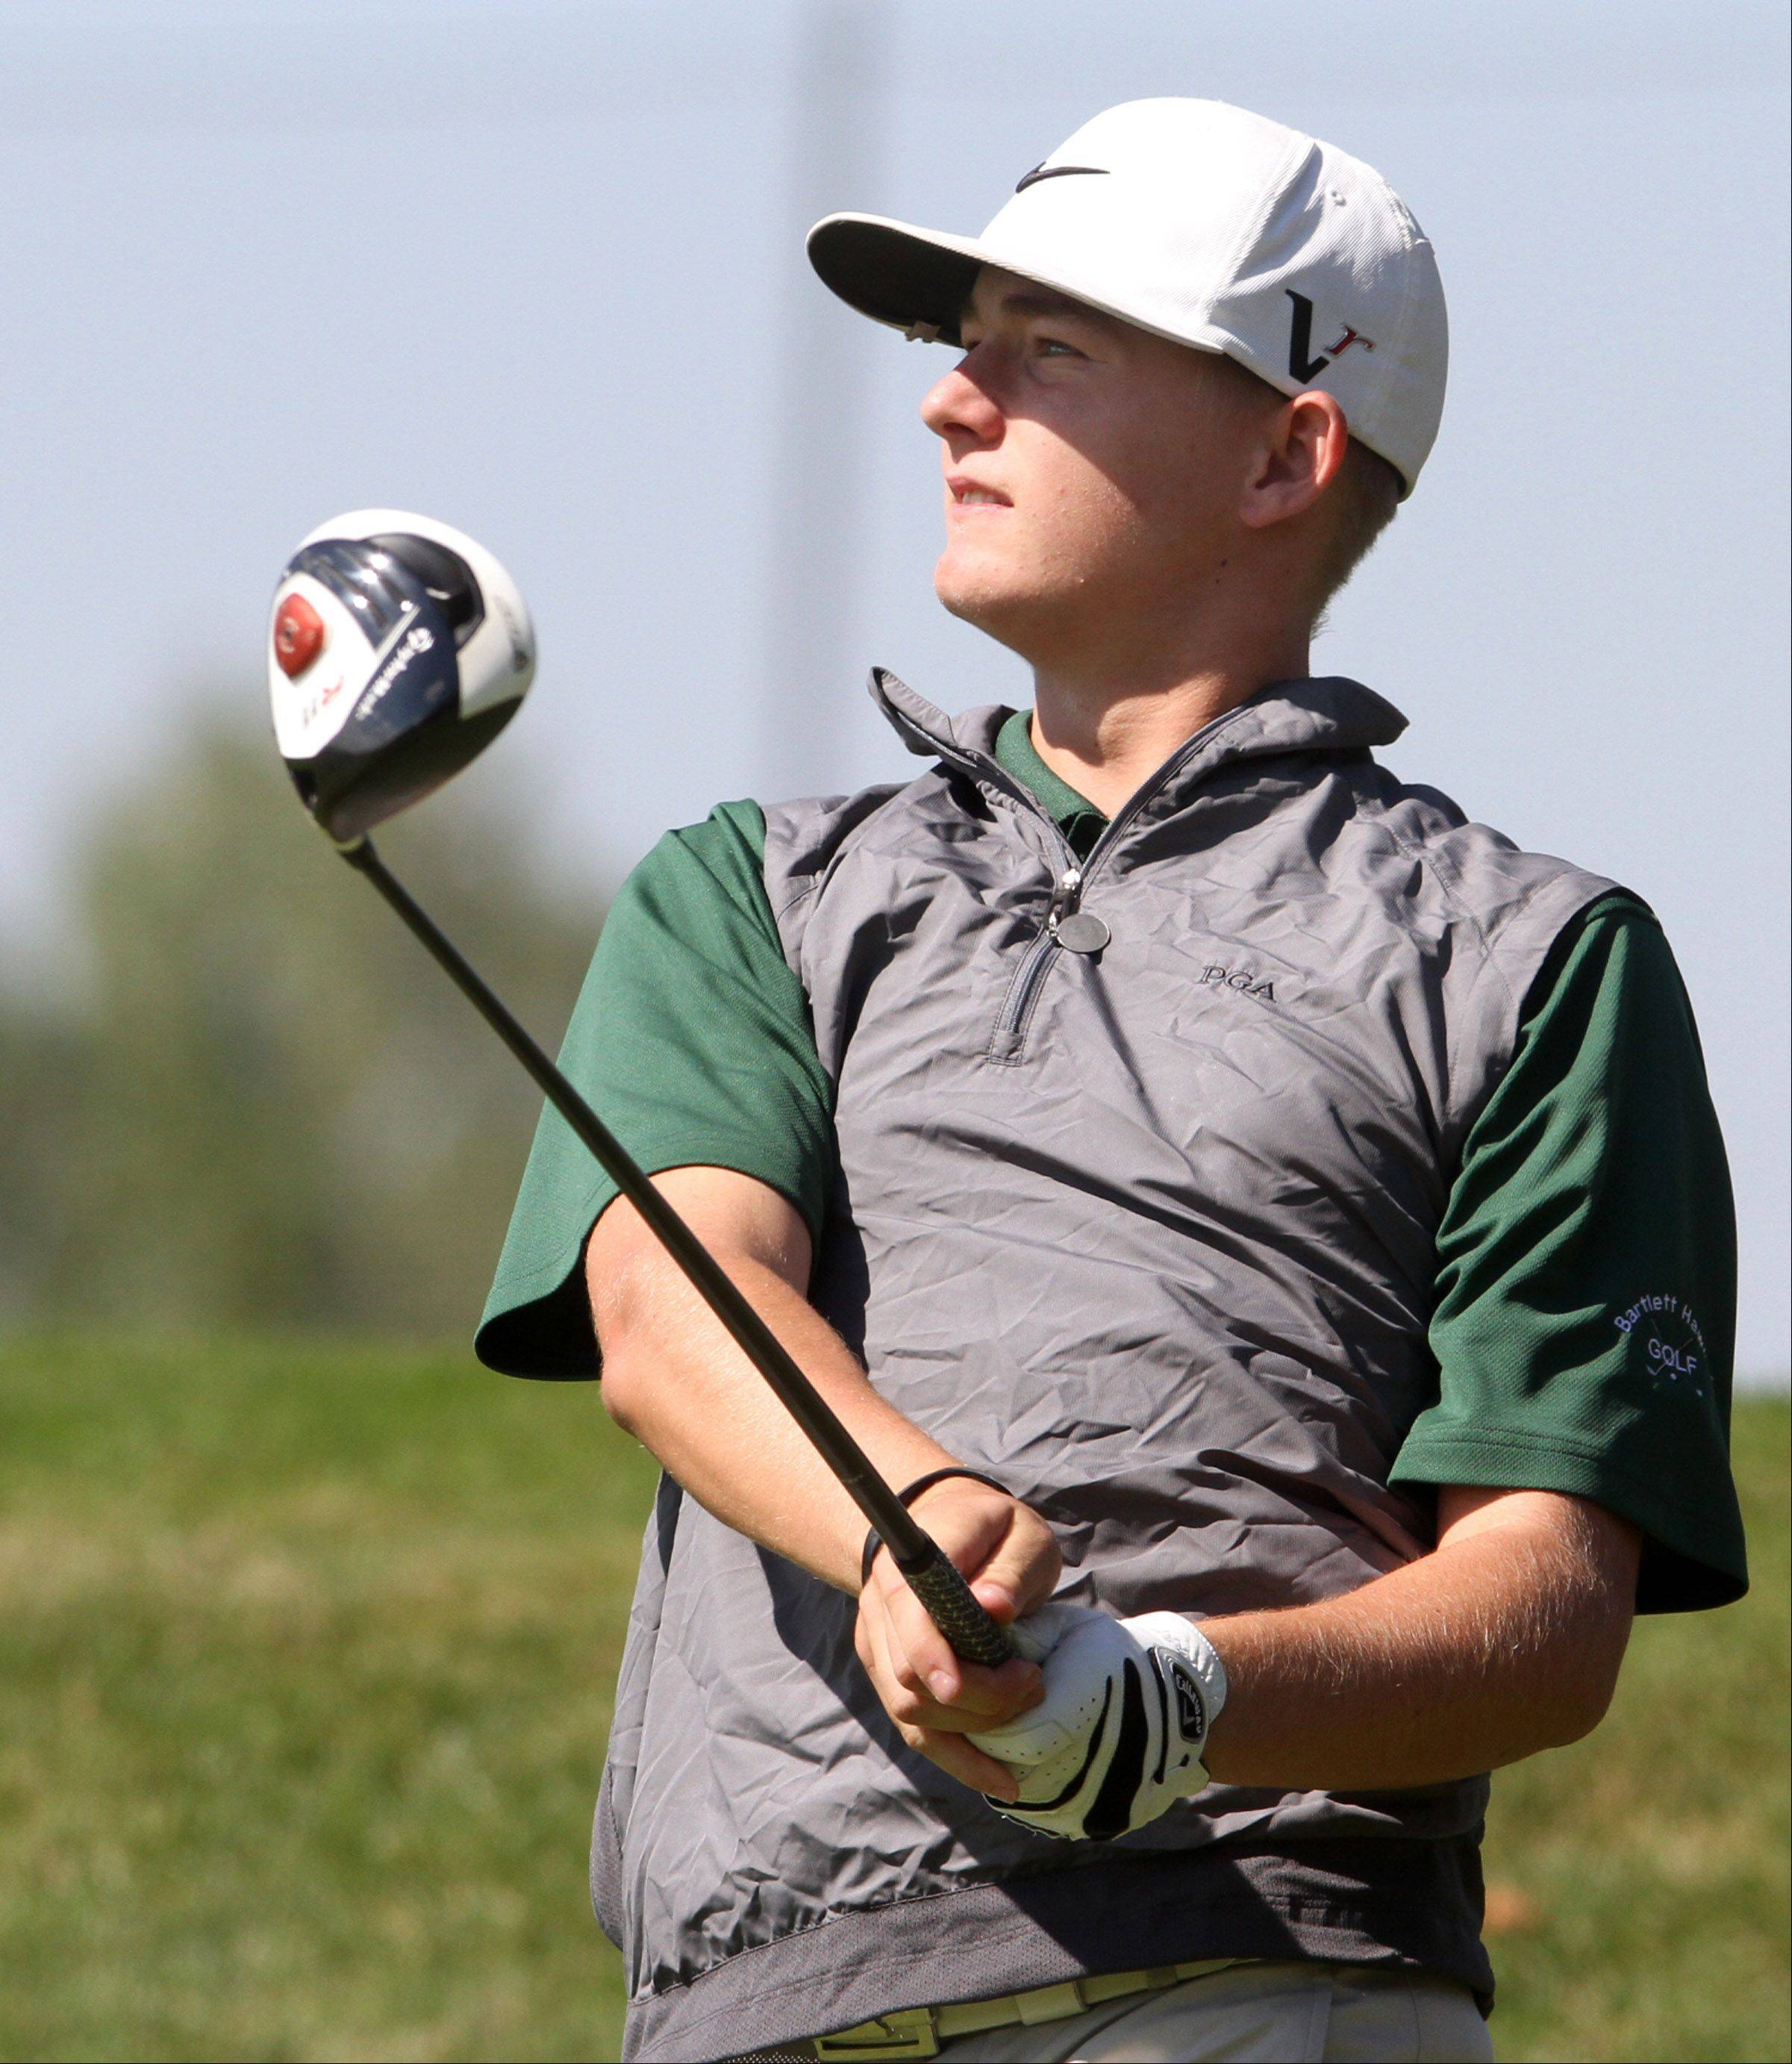 Bartlett's Ryan Wolfe watches his ball on No. 5 during the Charger Classic boys golf invite, hosted by Dundee-Crown High School, at Randall Oaks Golf Club in West Dundee on Saturday.